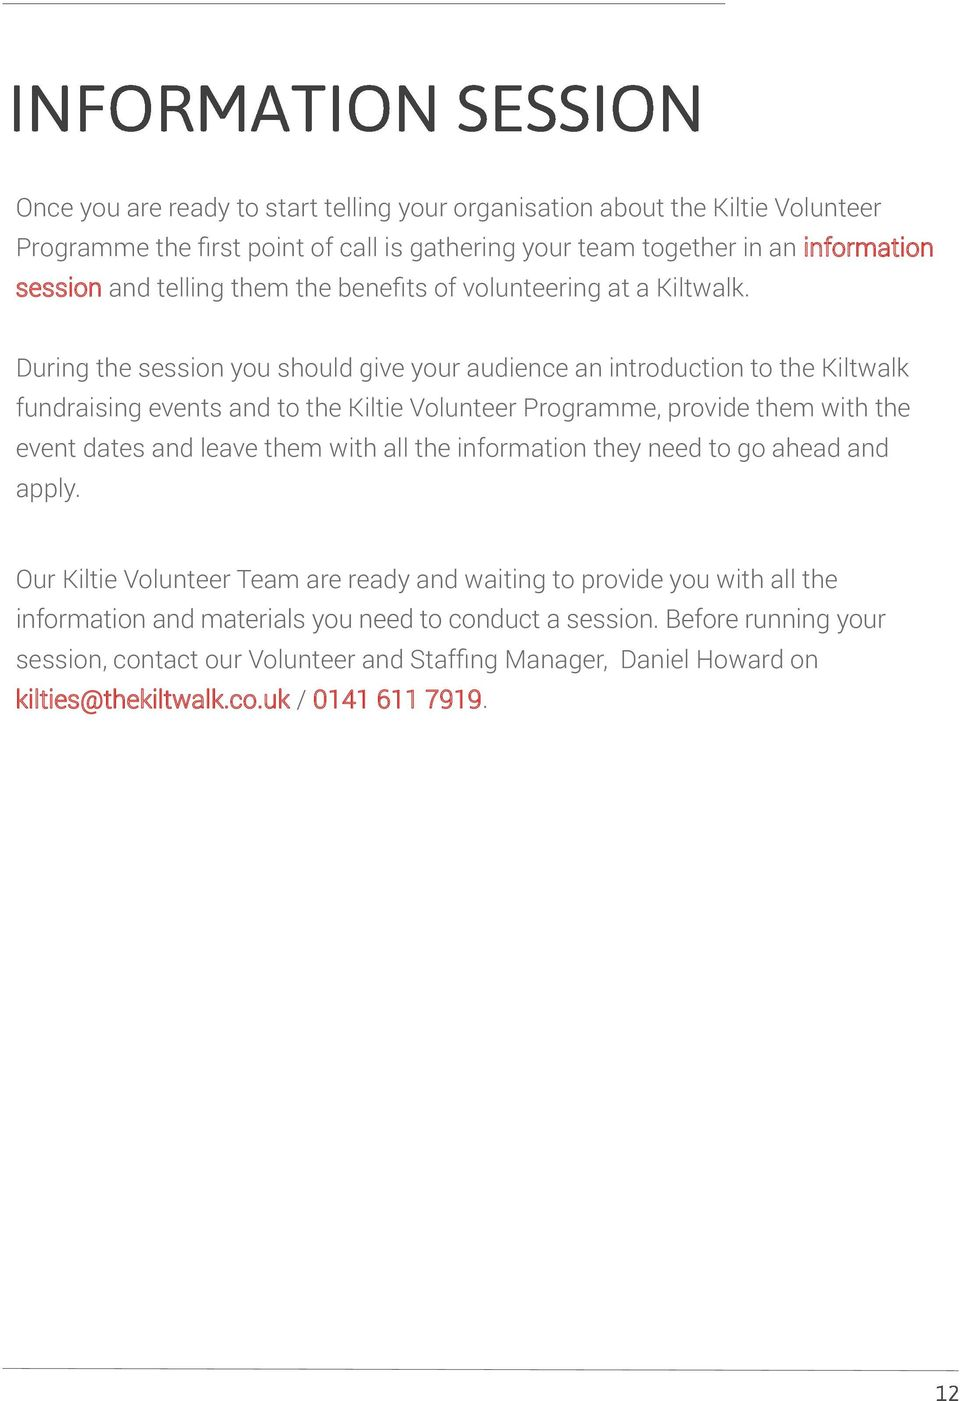 During the session you should give your audience an introduction to the Kiltwalk fundraising events and to the Kiltie Volunteer Programme, provide them with the event dates and leave